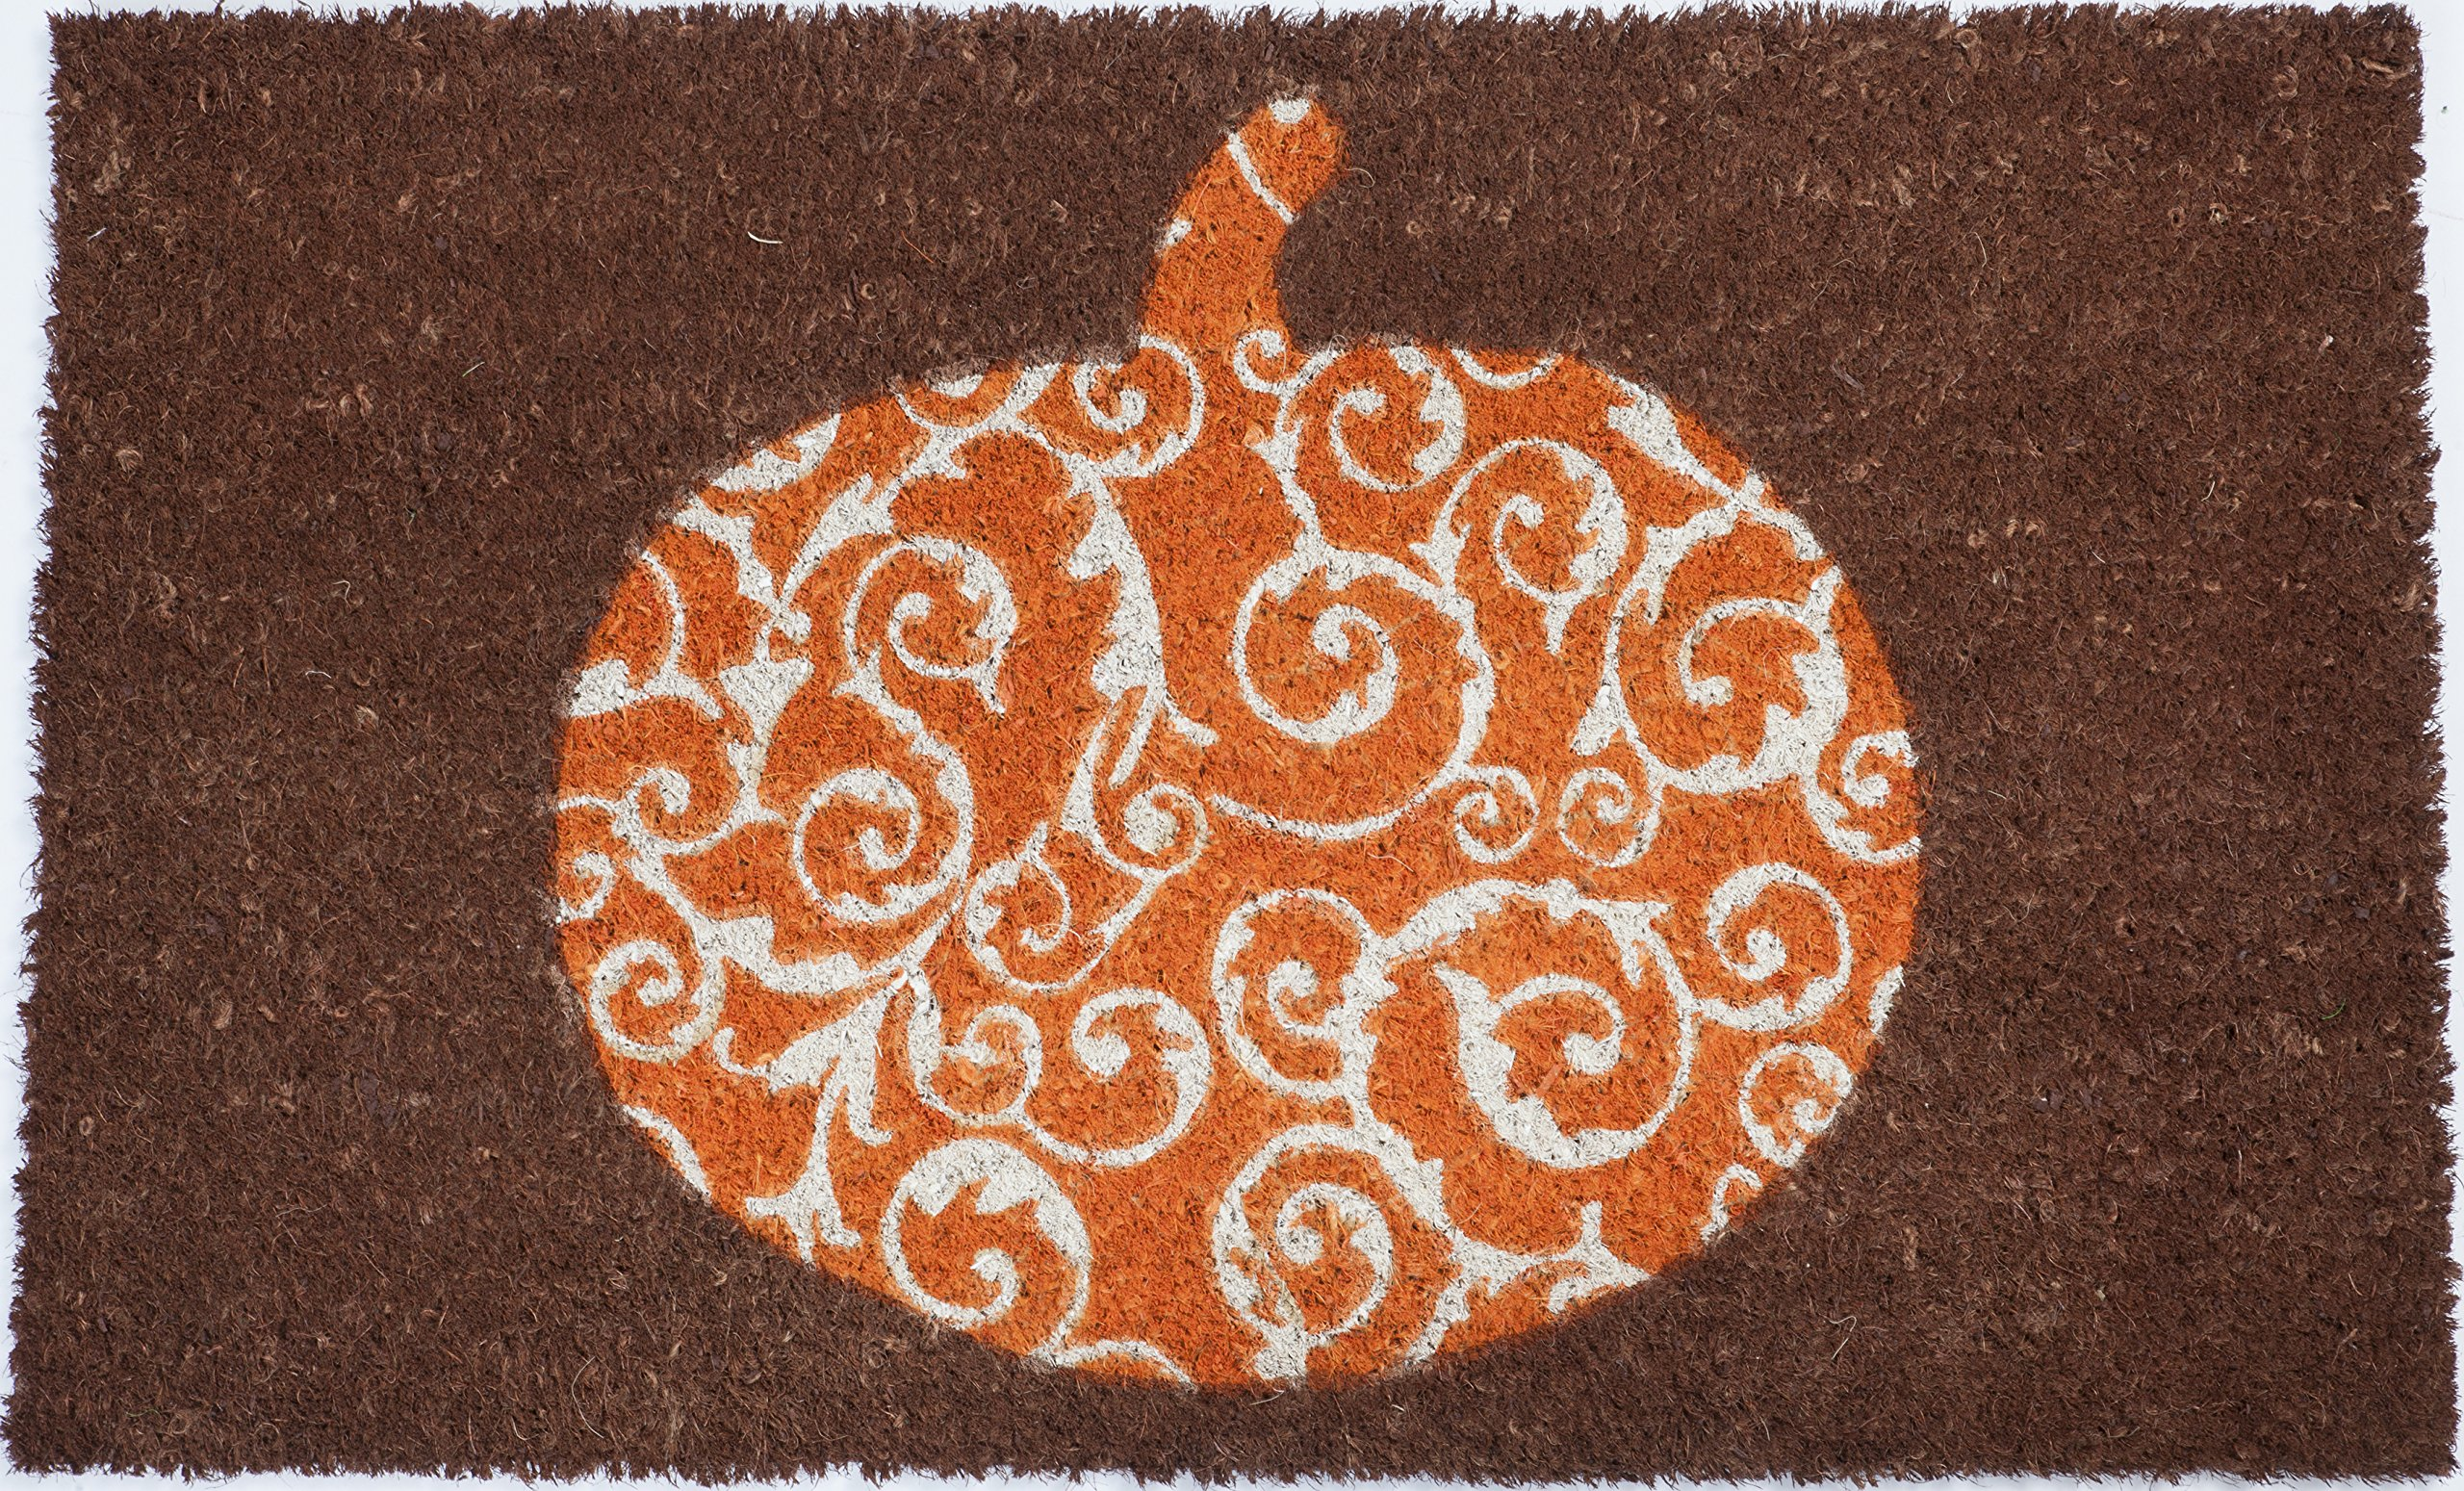 Entryways Scrolled Pumpkin Non- Slip Coconut Fiber Doormat 17'' X 28'' X .5'' by Entryways